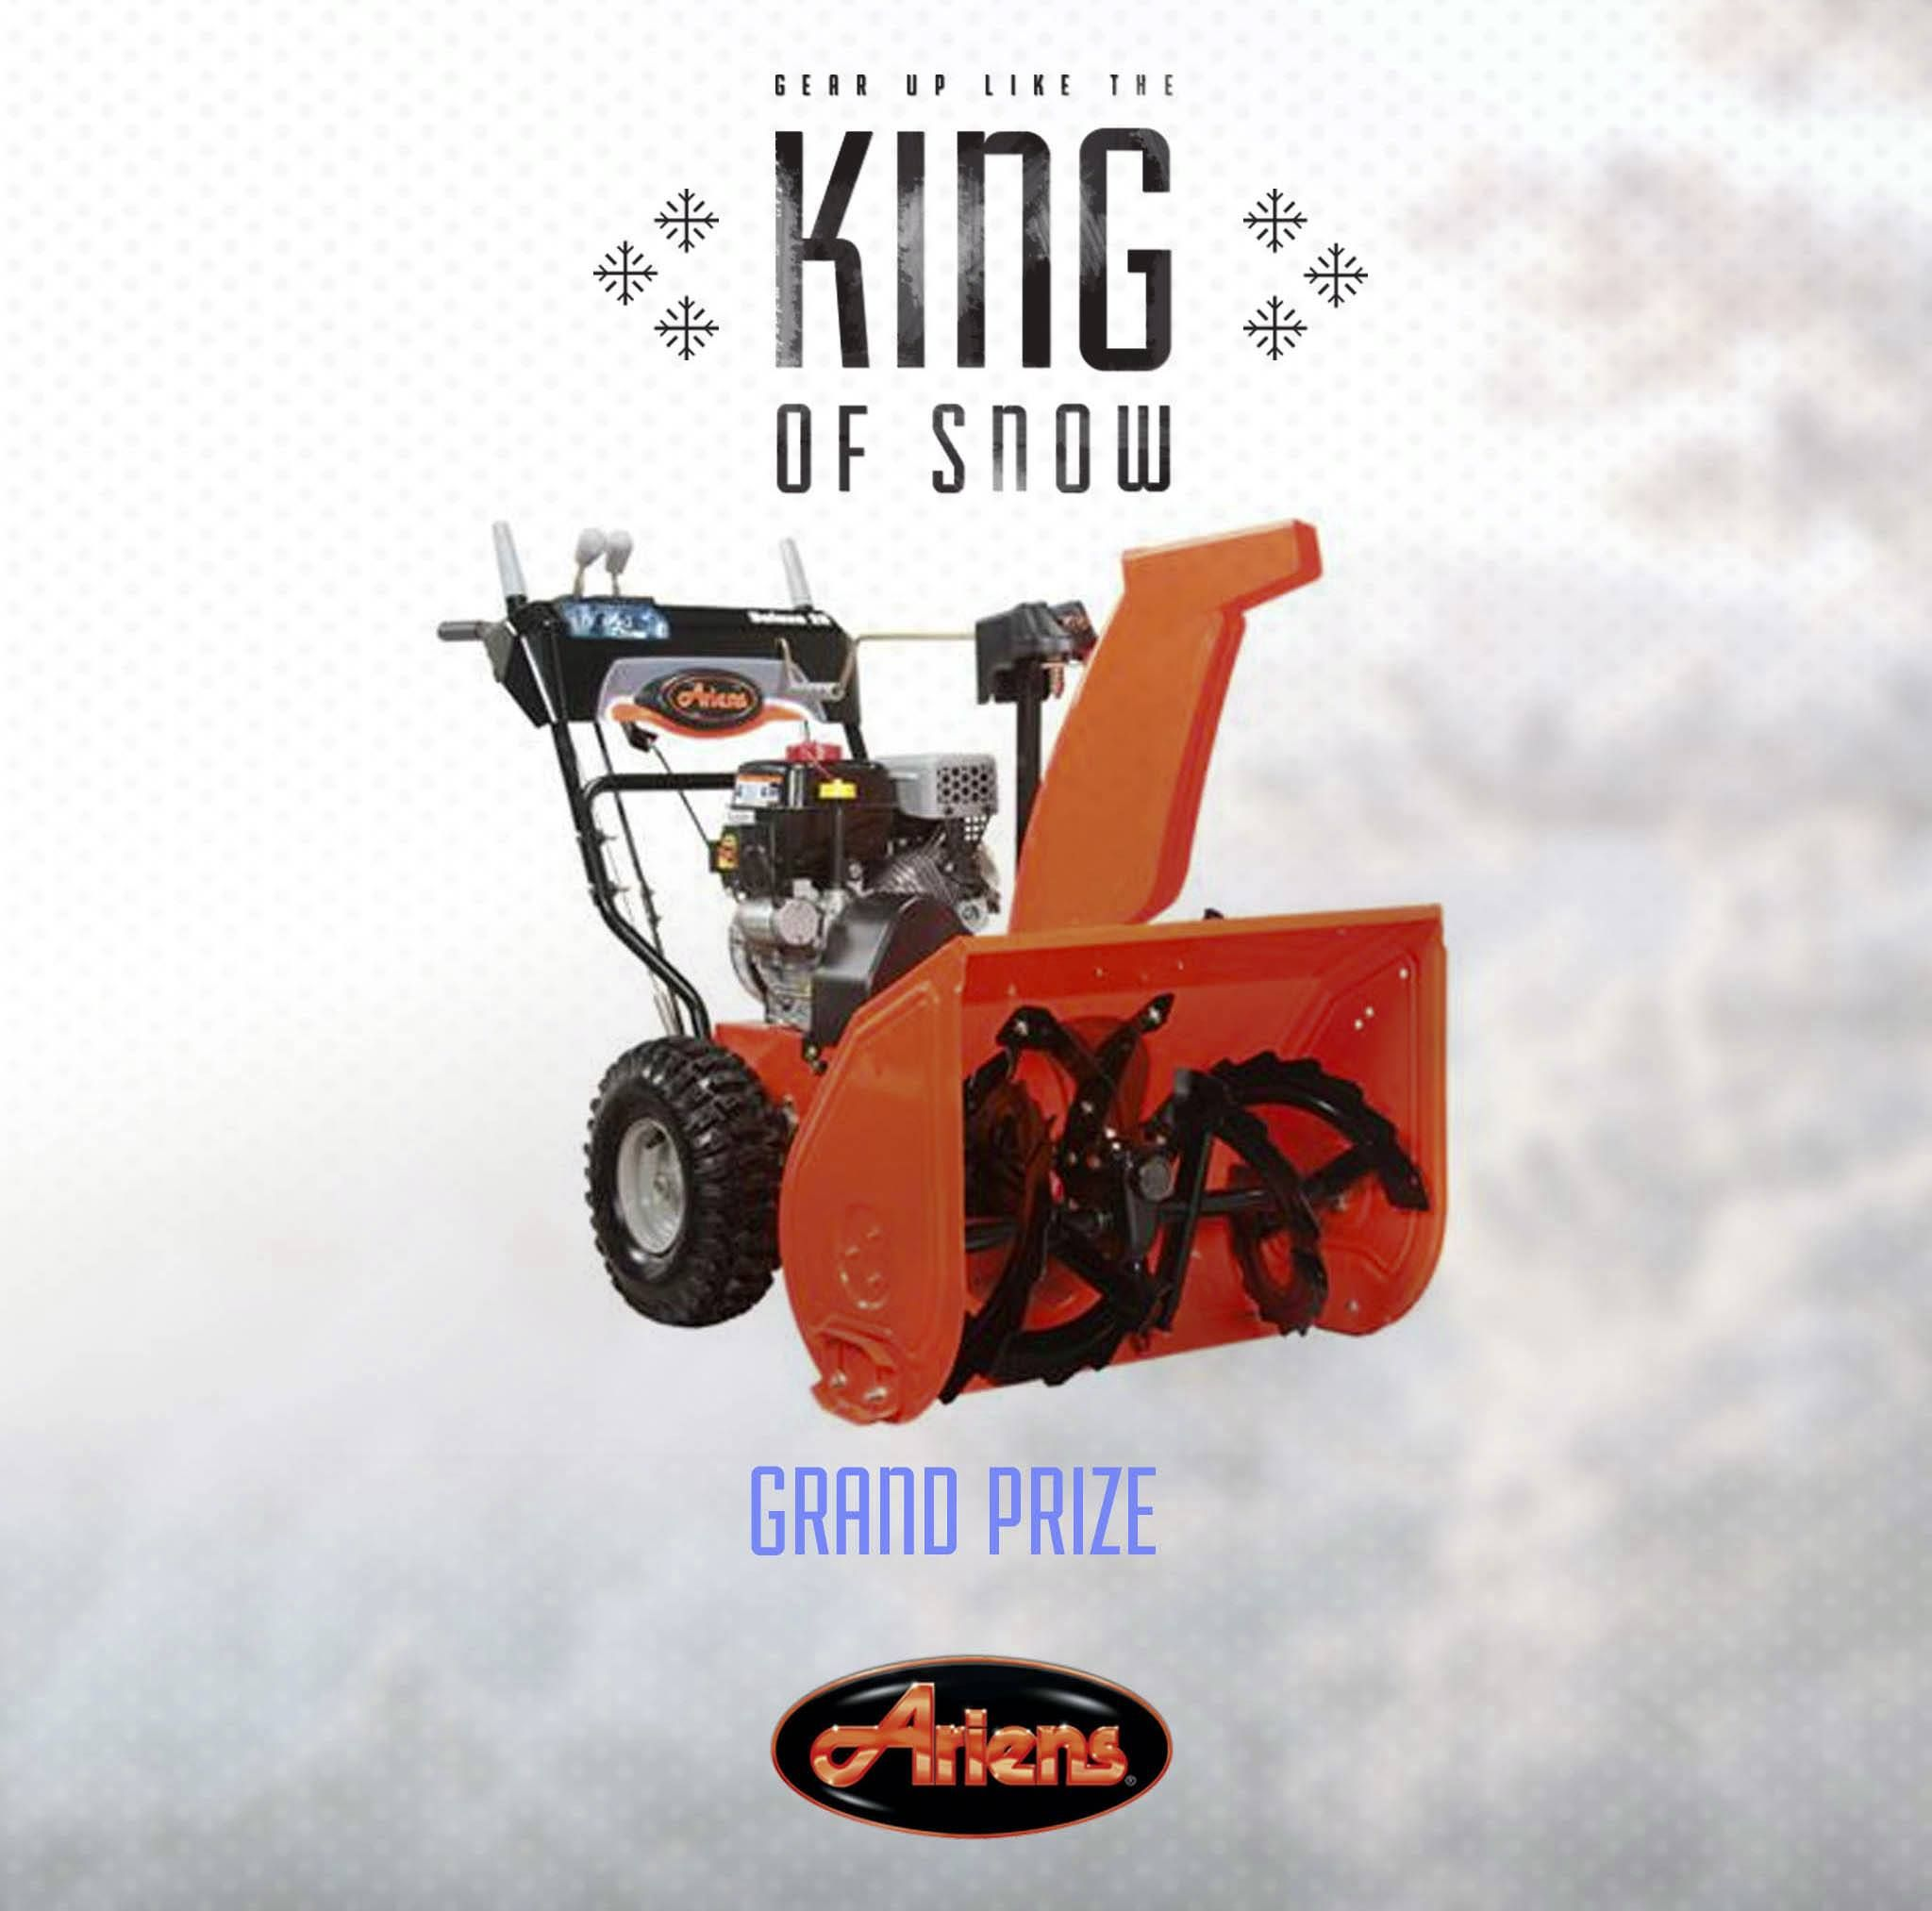 Attention Ariens fans! Tomorrow, February 11th at 4 p.m. (CST) is the drawing for the Grand Prize Ariens Deluxe 28 Sno-Thro! Are you feeling lucky?  Don't forget to enter once per day - Chance for daily prizes!  Use this link to enter --> http://woobox.com/gzq6ns  #KingOfSnow #Ariens